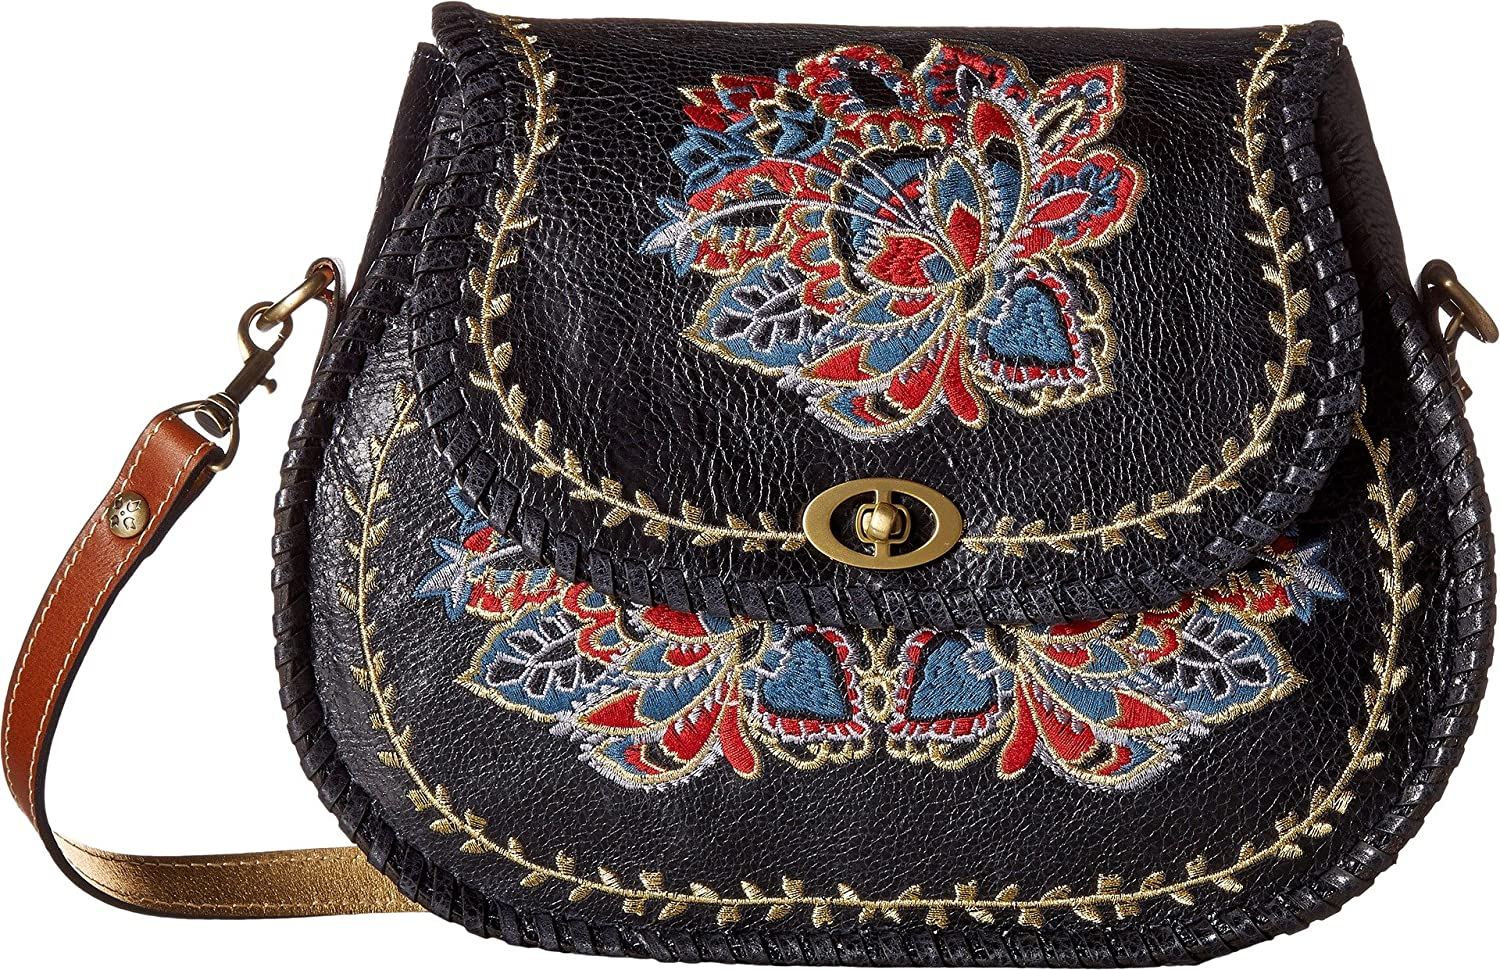 90dadef2d9a1 Patricia Nash Women s Arezzo Flap Shoulder Bag Navy One Size  Handbags   Amazon.com